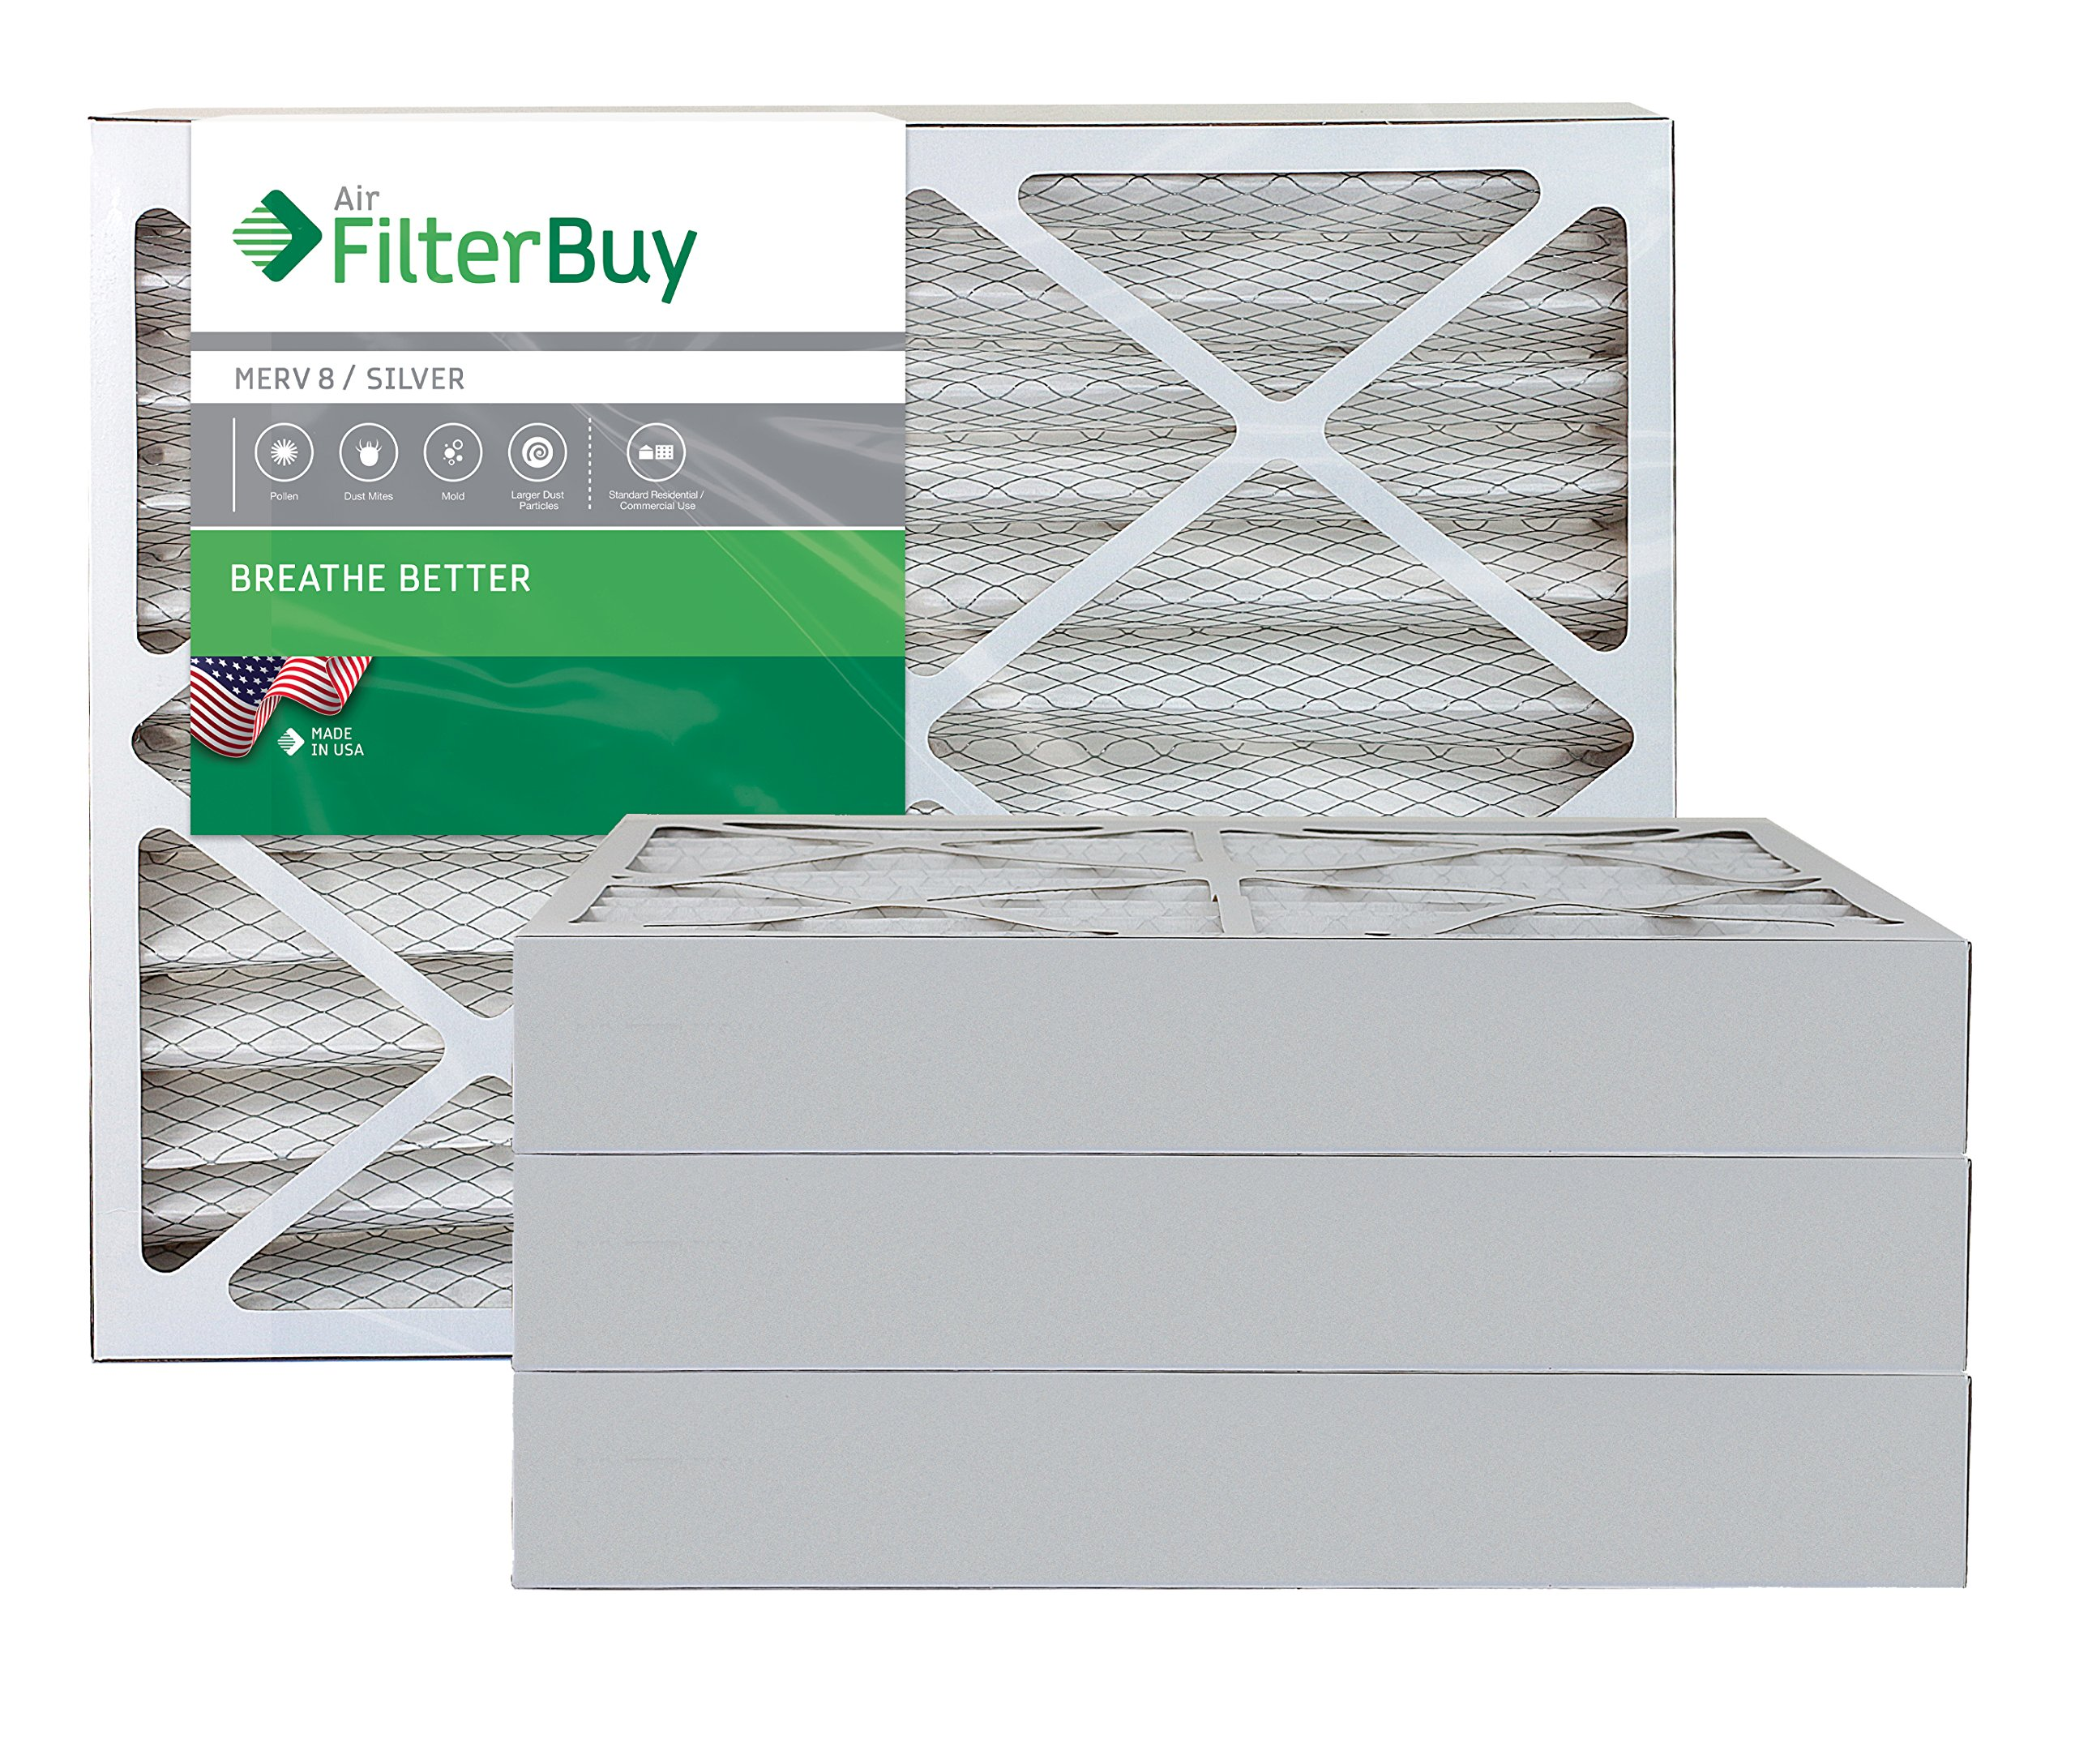 FilterBuy 20x24x4 MERV 8 Pleated AC Furnace Air Filter, (Pack of 4 Filters), 20x24x4 – Silver